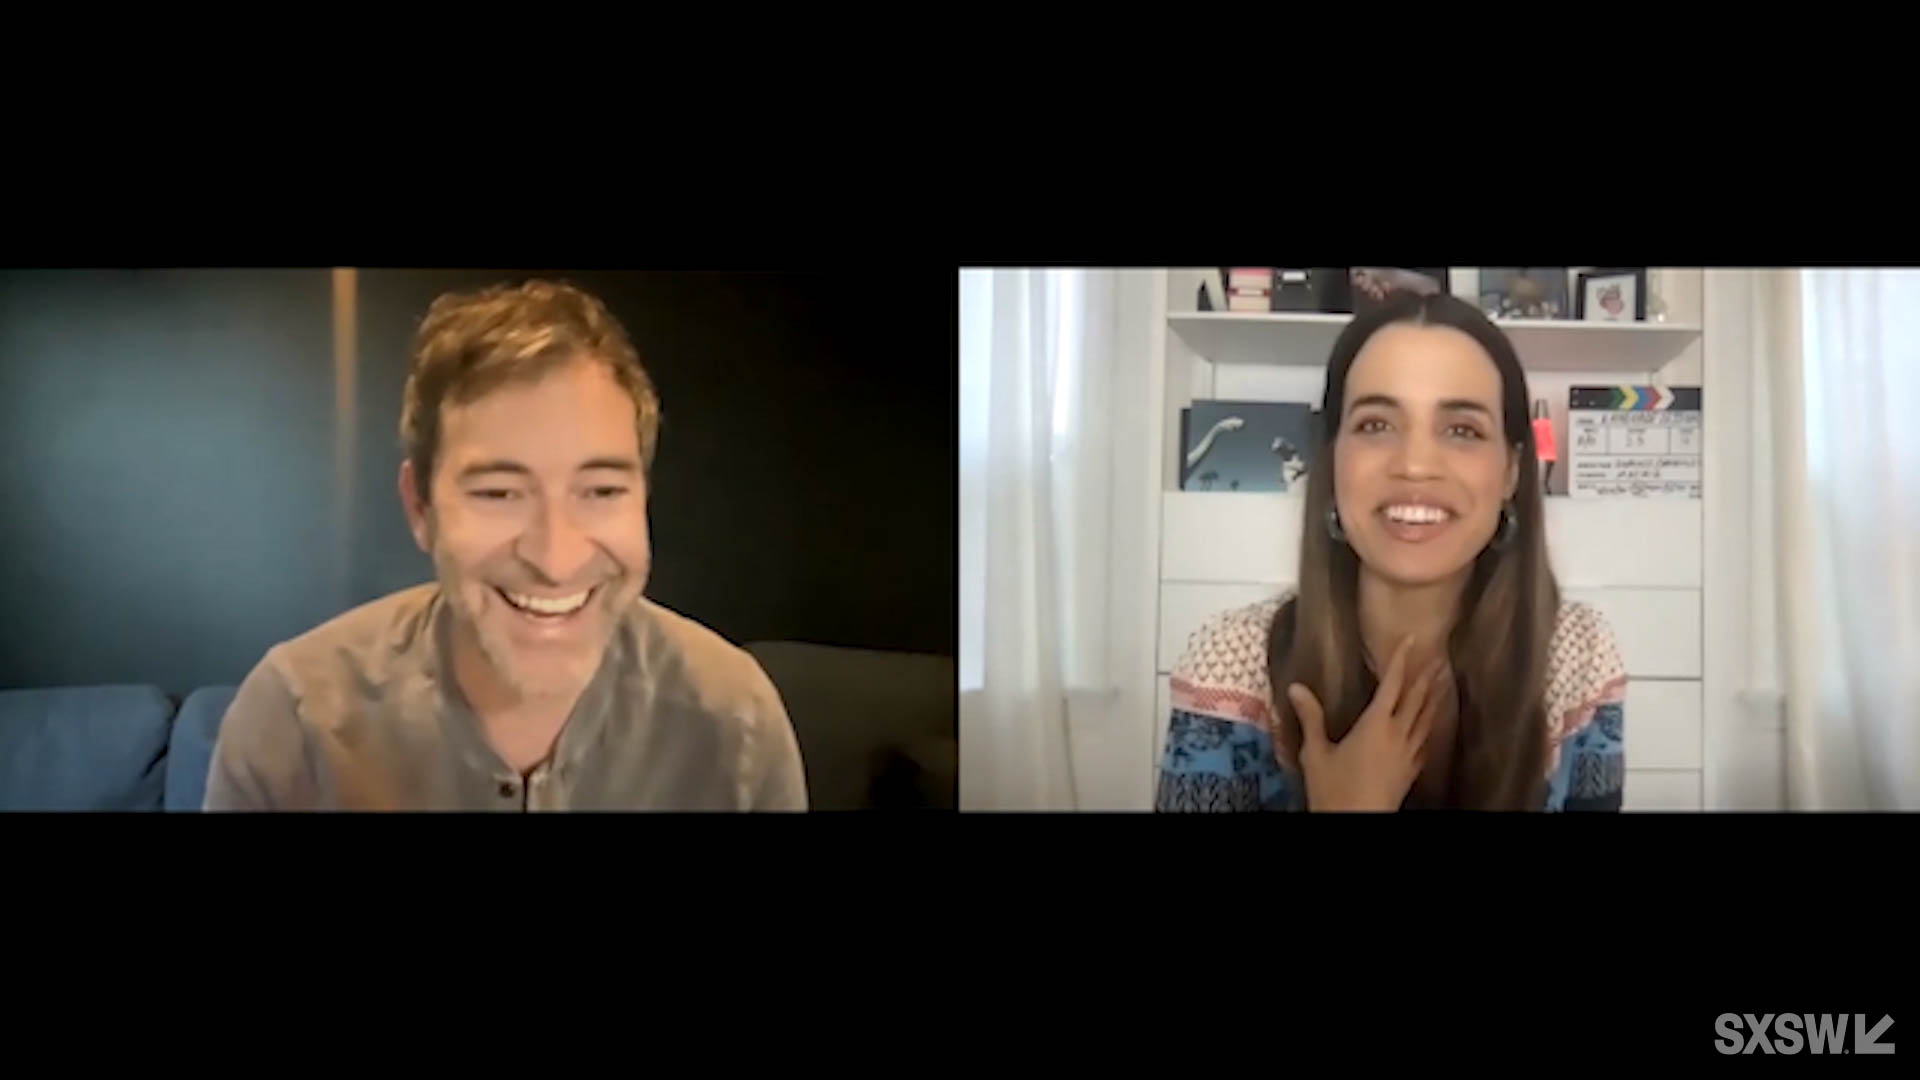 Mark Duplass and Natalie Morales speak during their featured session at SXSW Online on March 18, 2021.